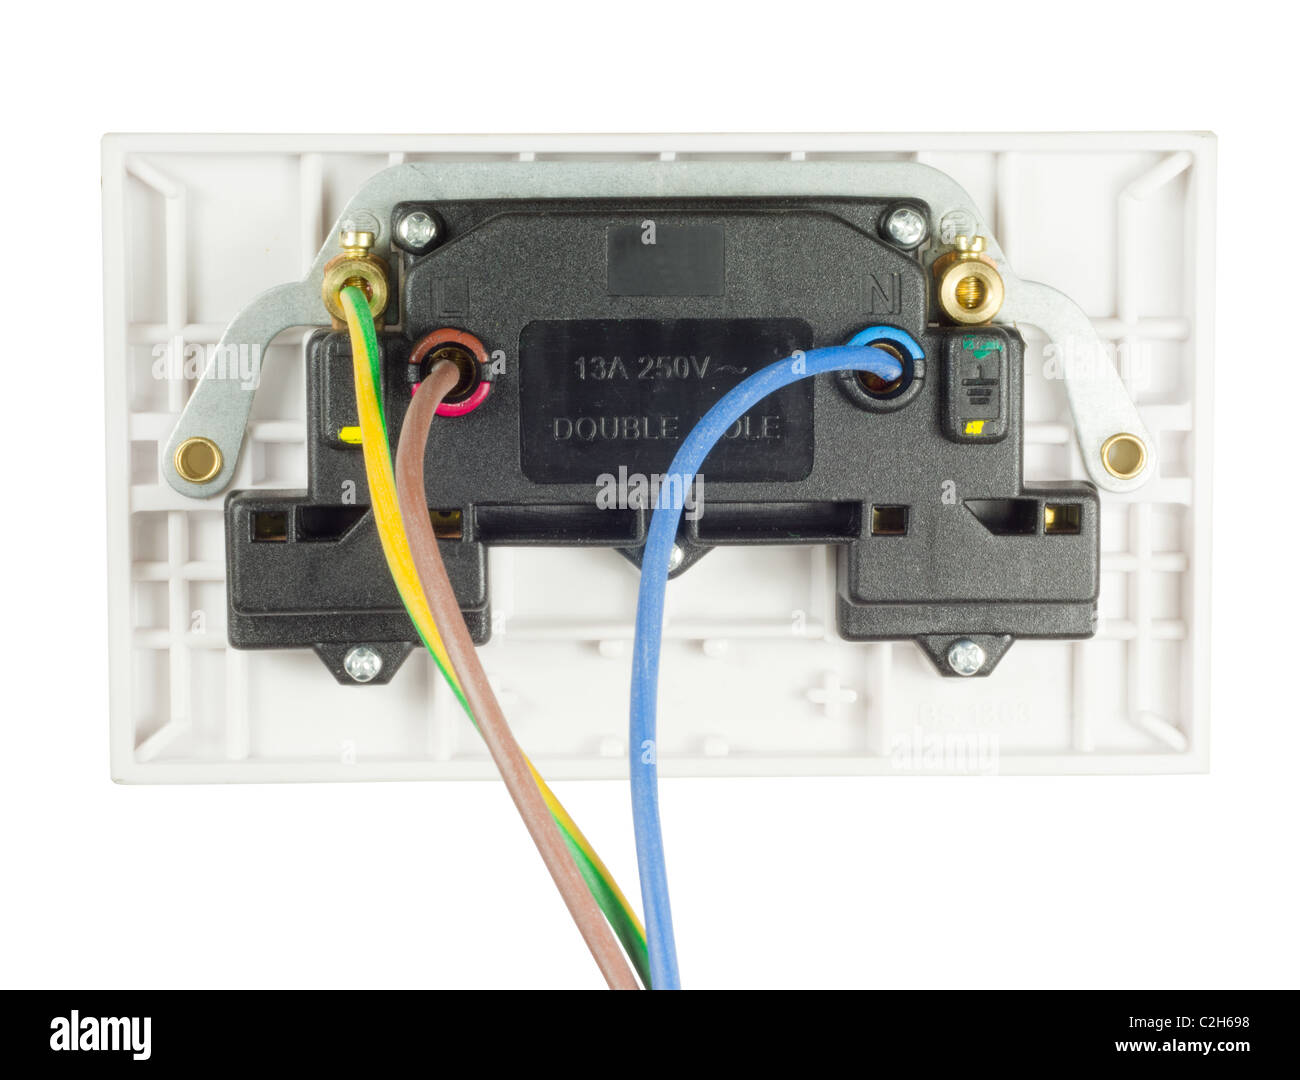 hight resolution of double socket wiring a outlet wiring diagram pass wiring a double outlet wiring a double electrical outlet